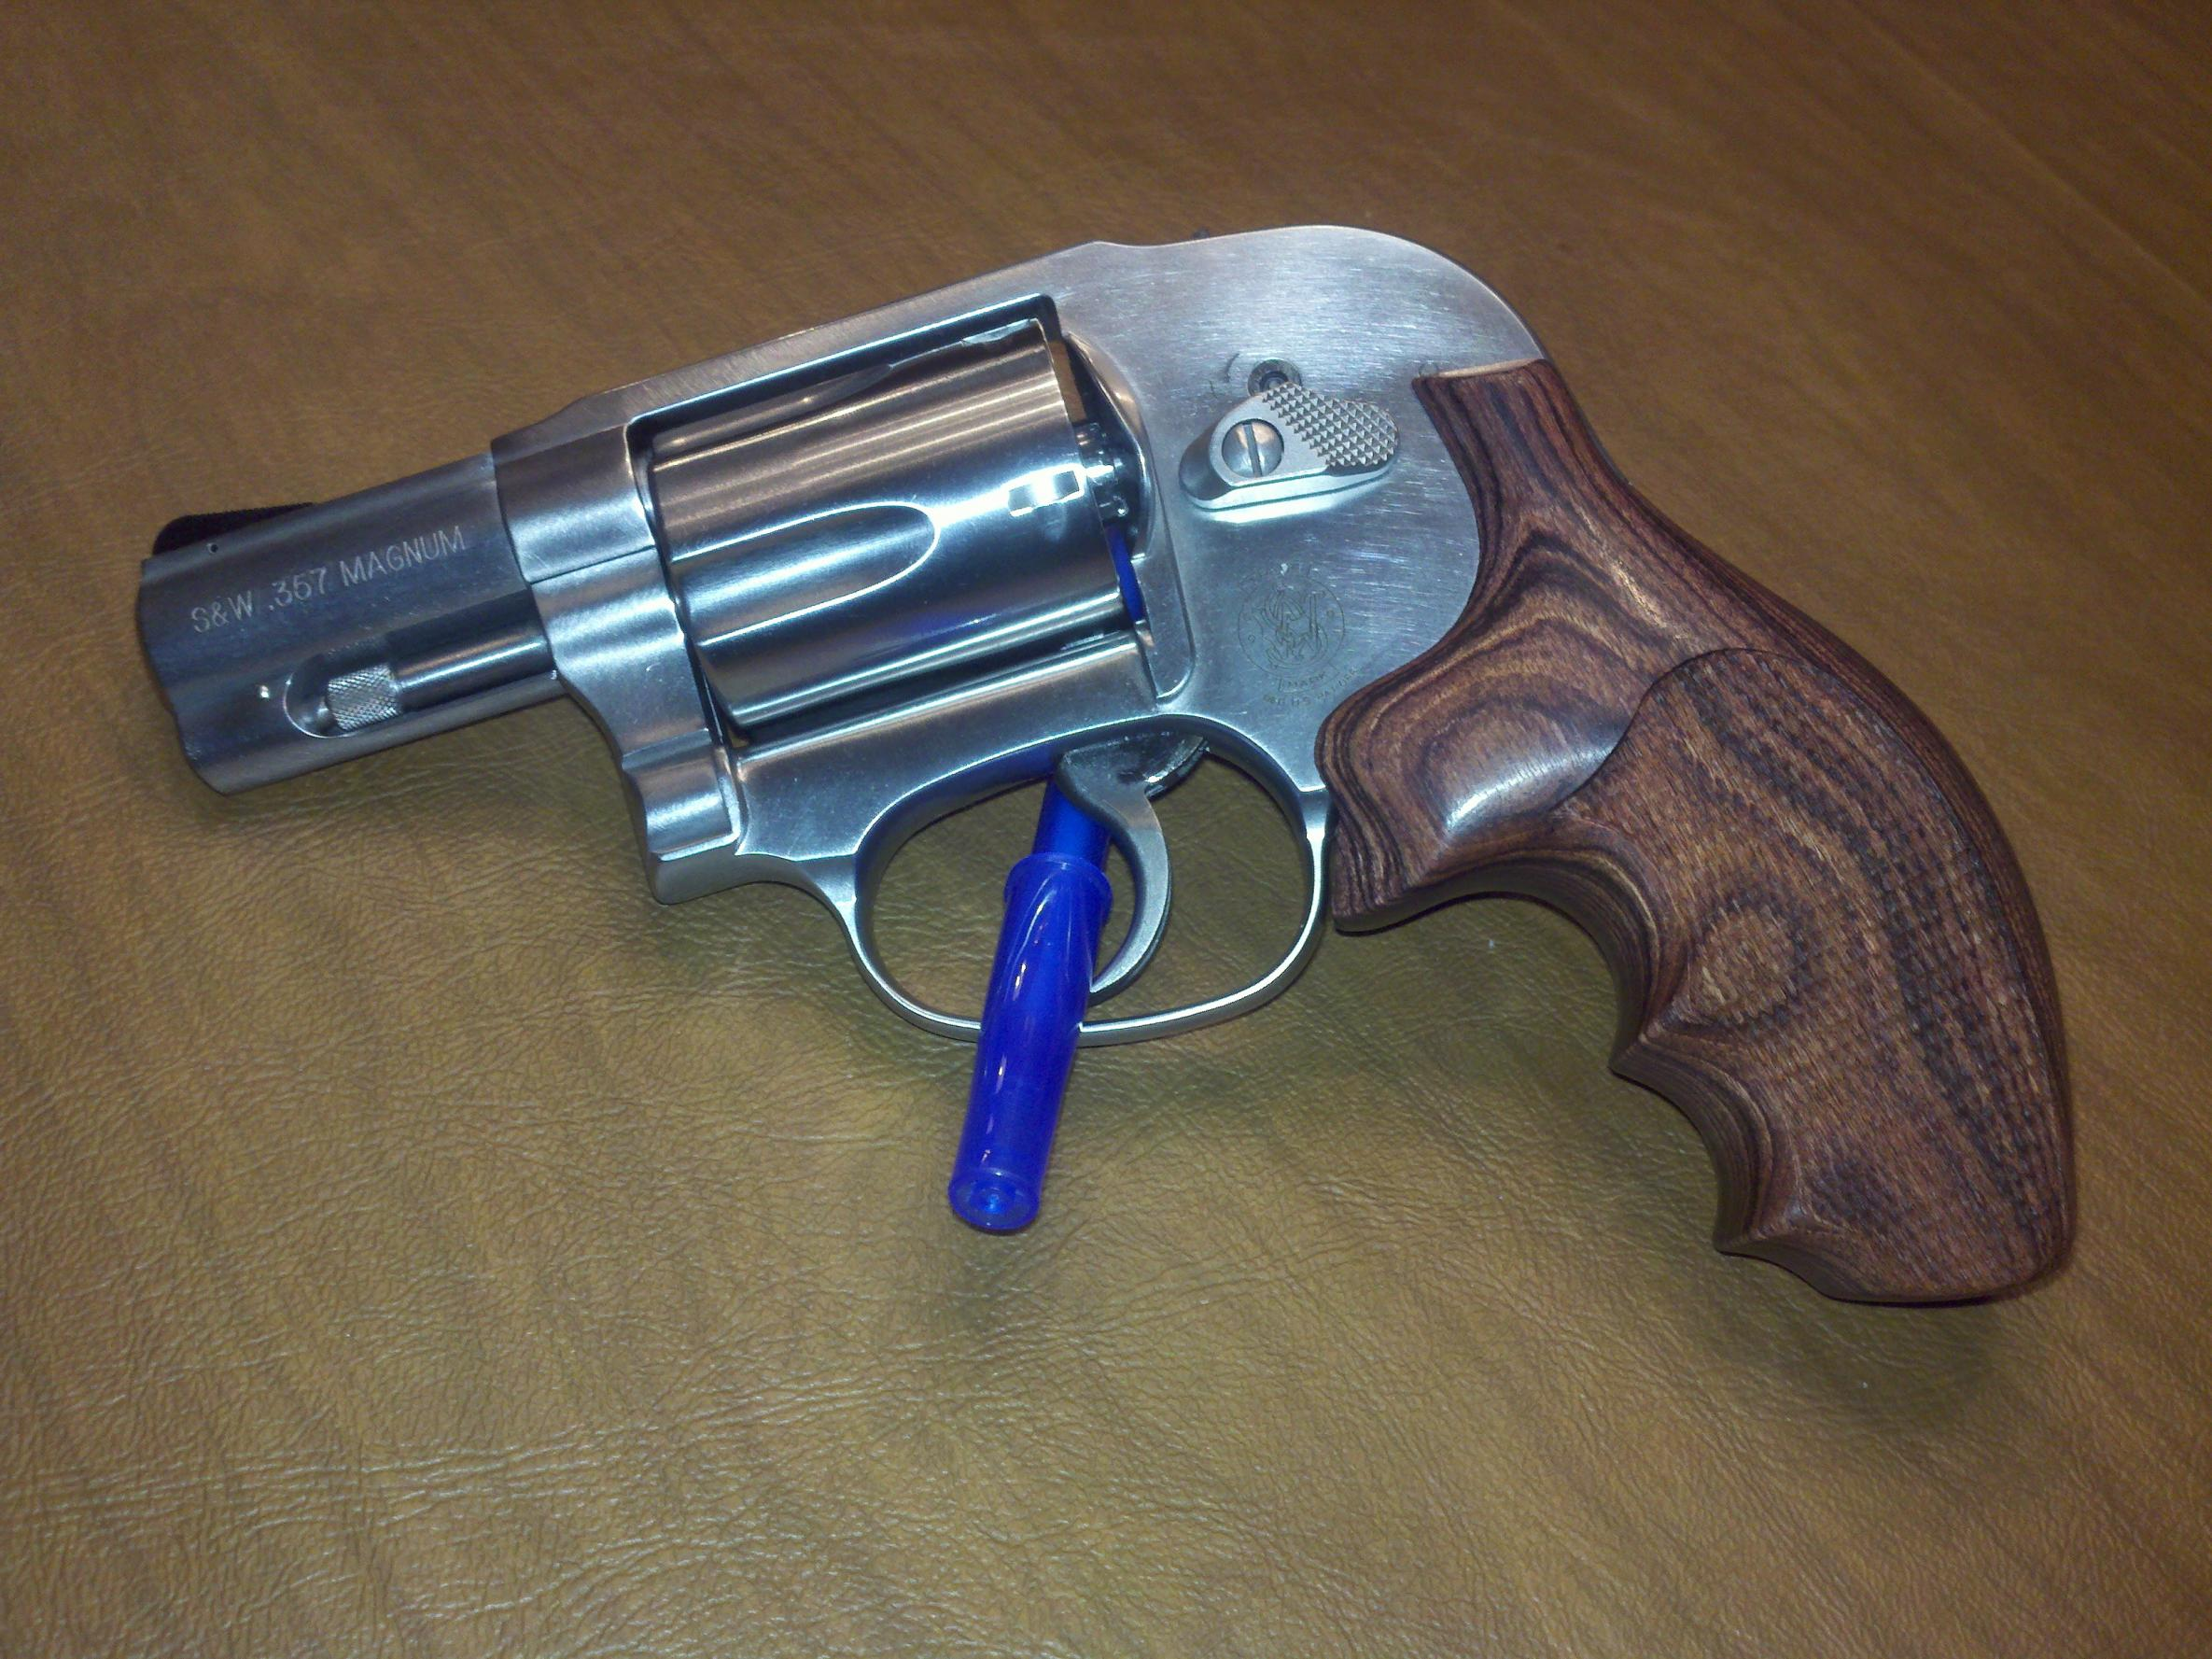 New Hogue grips on my S&W 649...SWEET!!!-2011-02-07_22-07-03_890.jpg